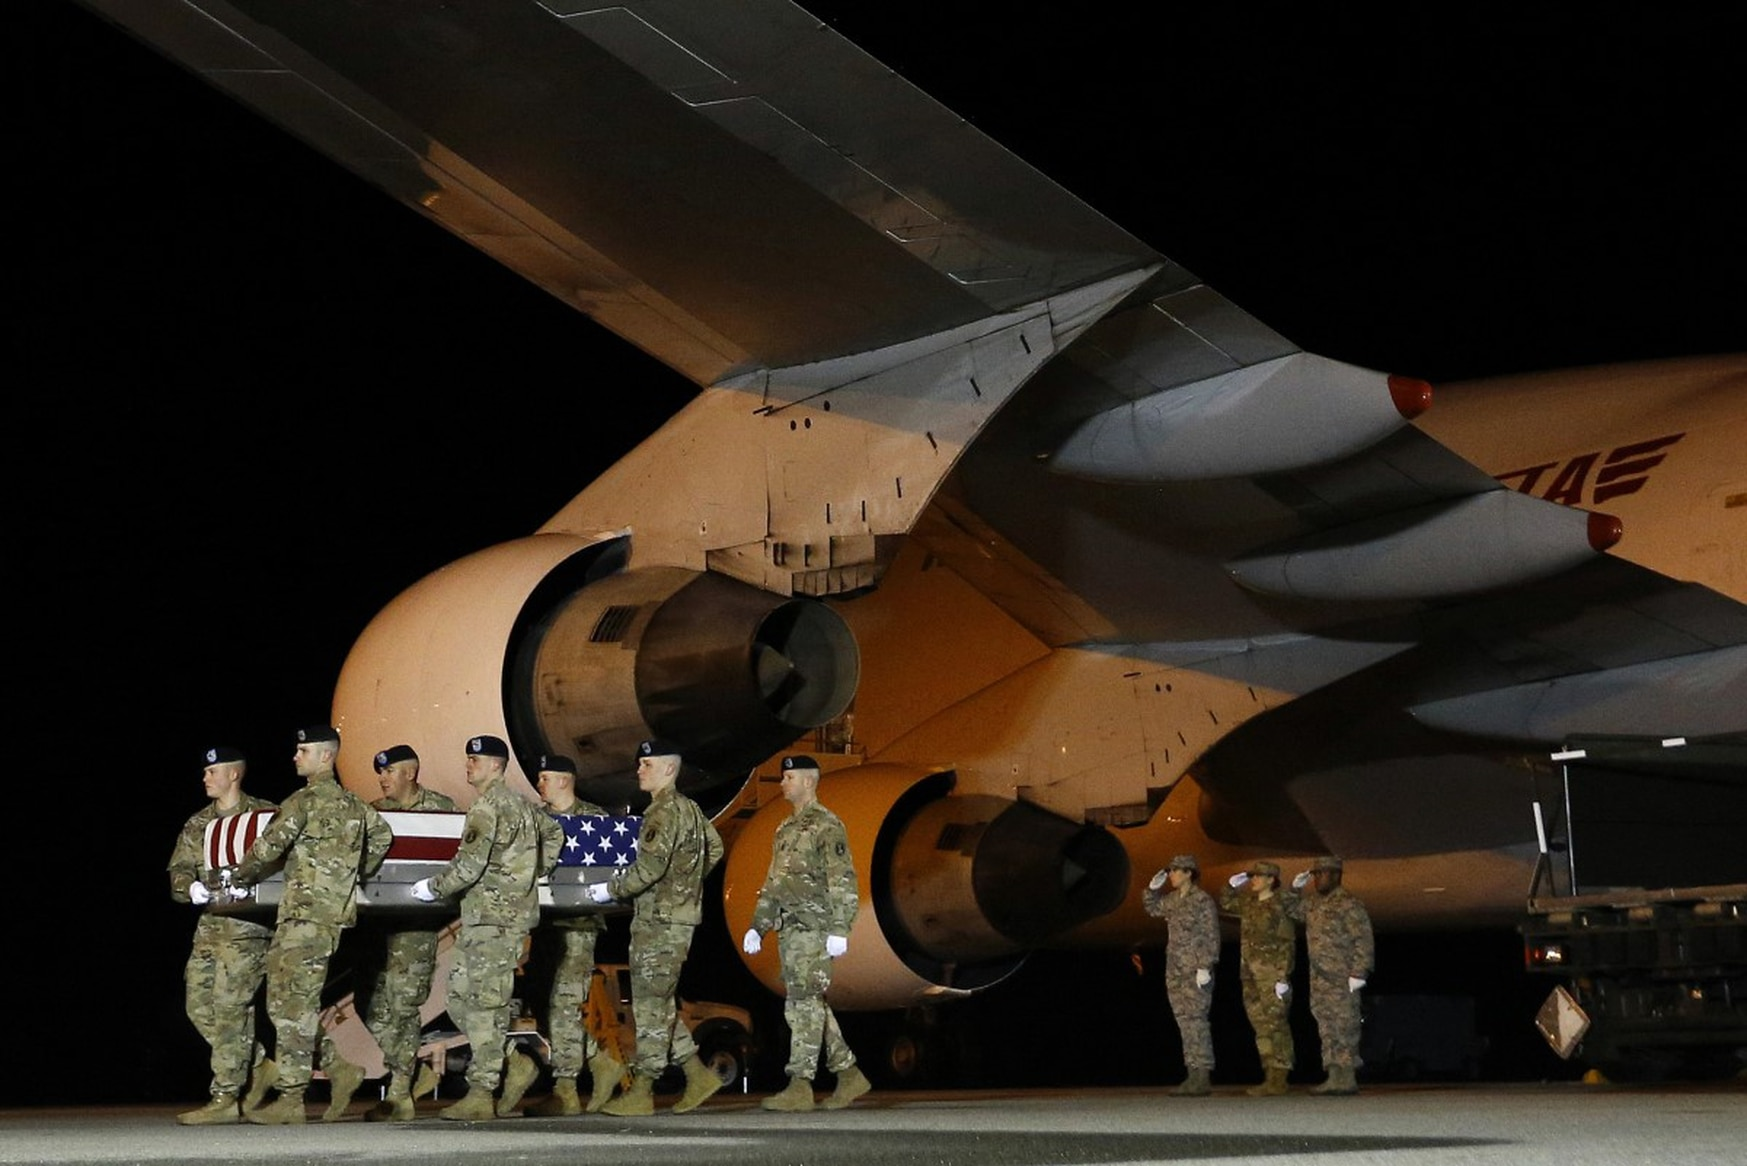 An Army carry team brings the remains of Sgt. Leandro Jasso back to the United States on Nov. 26, 2018. (Patrick Semansky/AP)